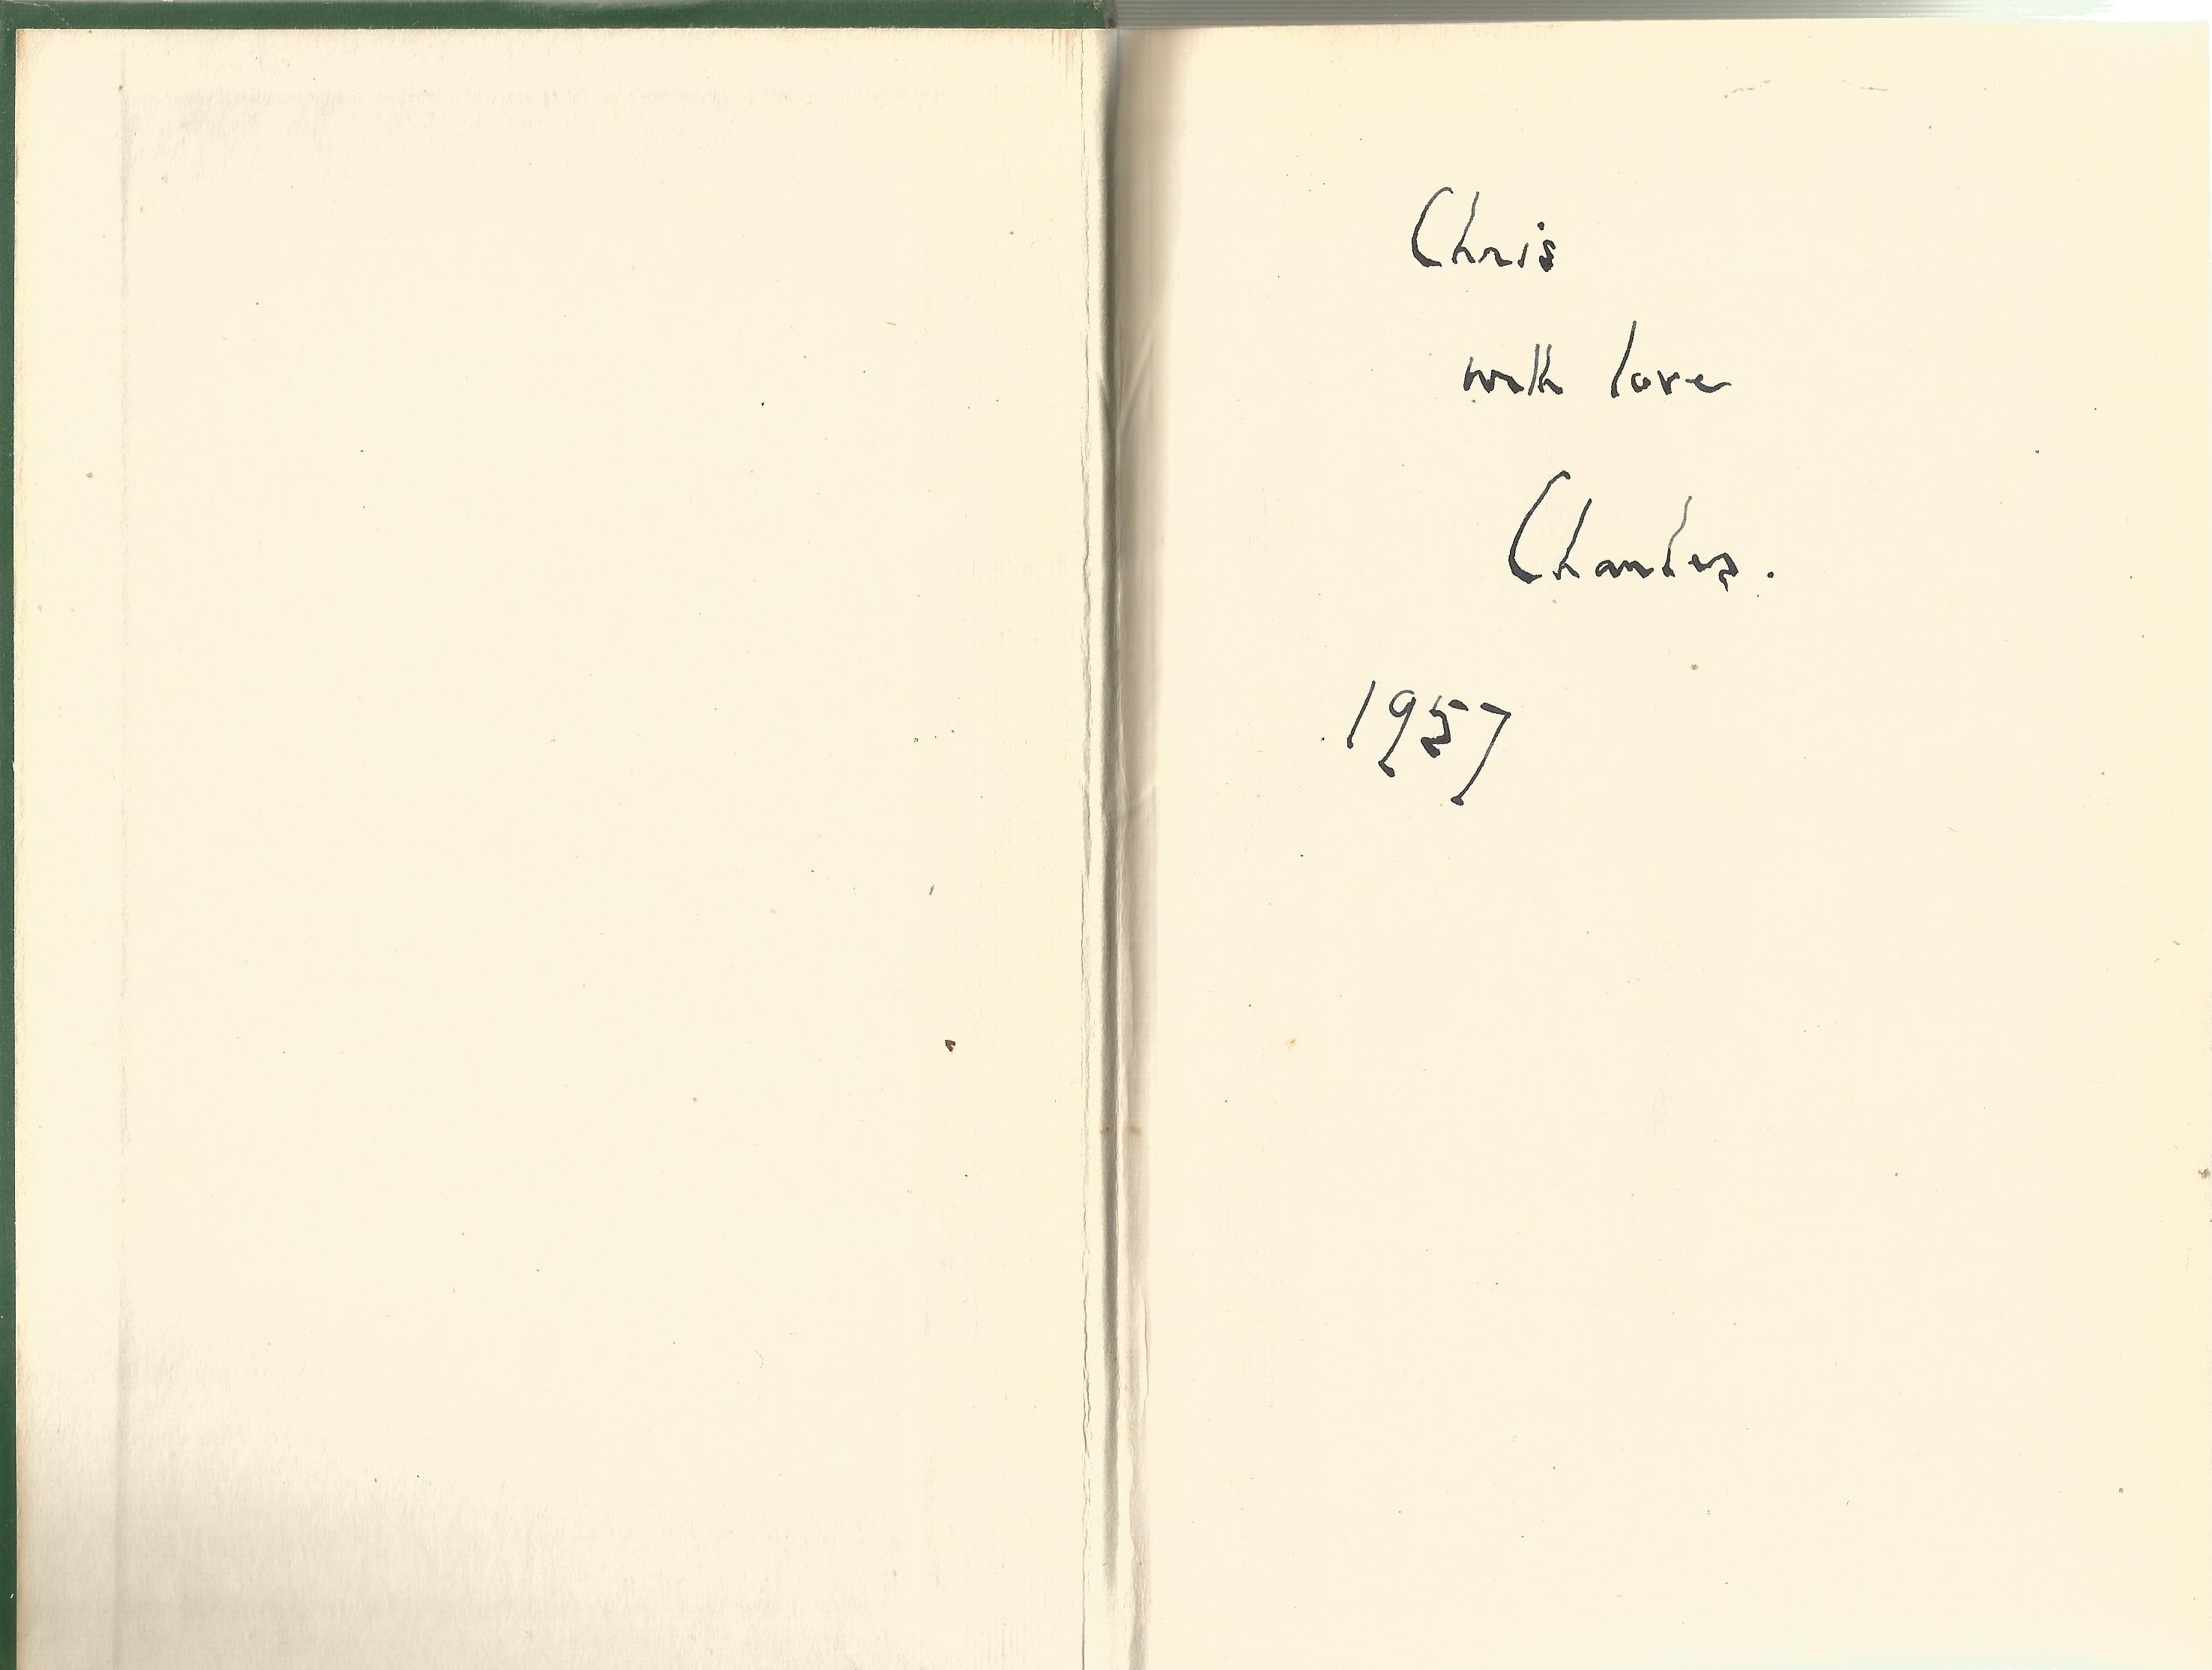 Charles Morgan Hardback Book Challenge to Venus 1957 signed by the Author on the First Page and - Image 2 of 2